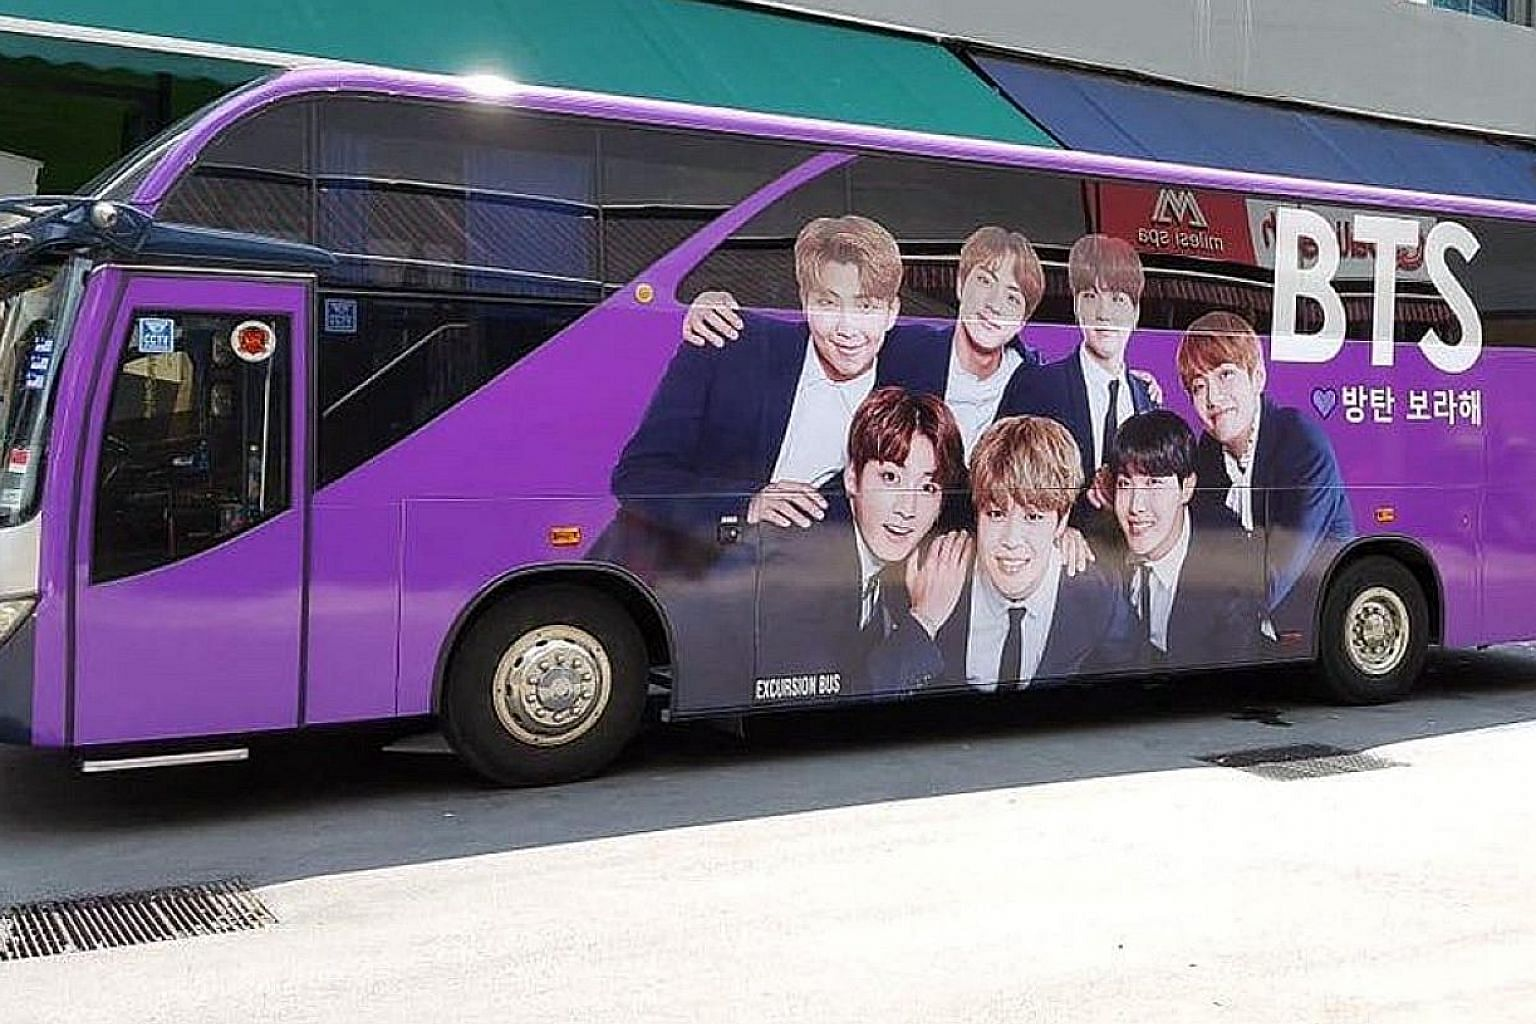 Some BTS fans have raised a four-figure sum to dress up a tour bus with pictures of the band members on both sides. The bus will pass by popular local venues on the day of the concert. The collection of BTS-related merchandise belonging to sisters Sa